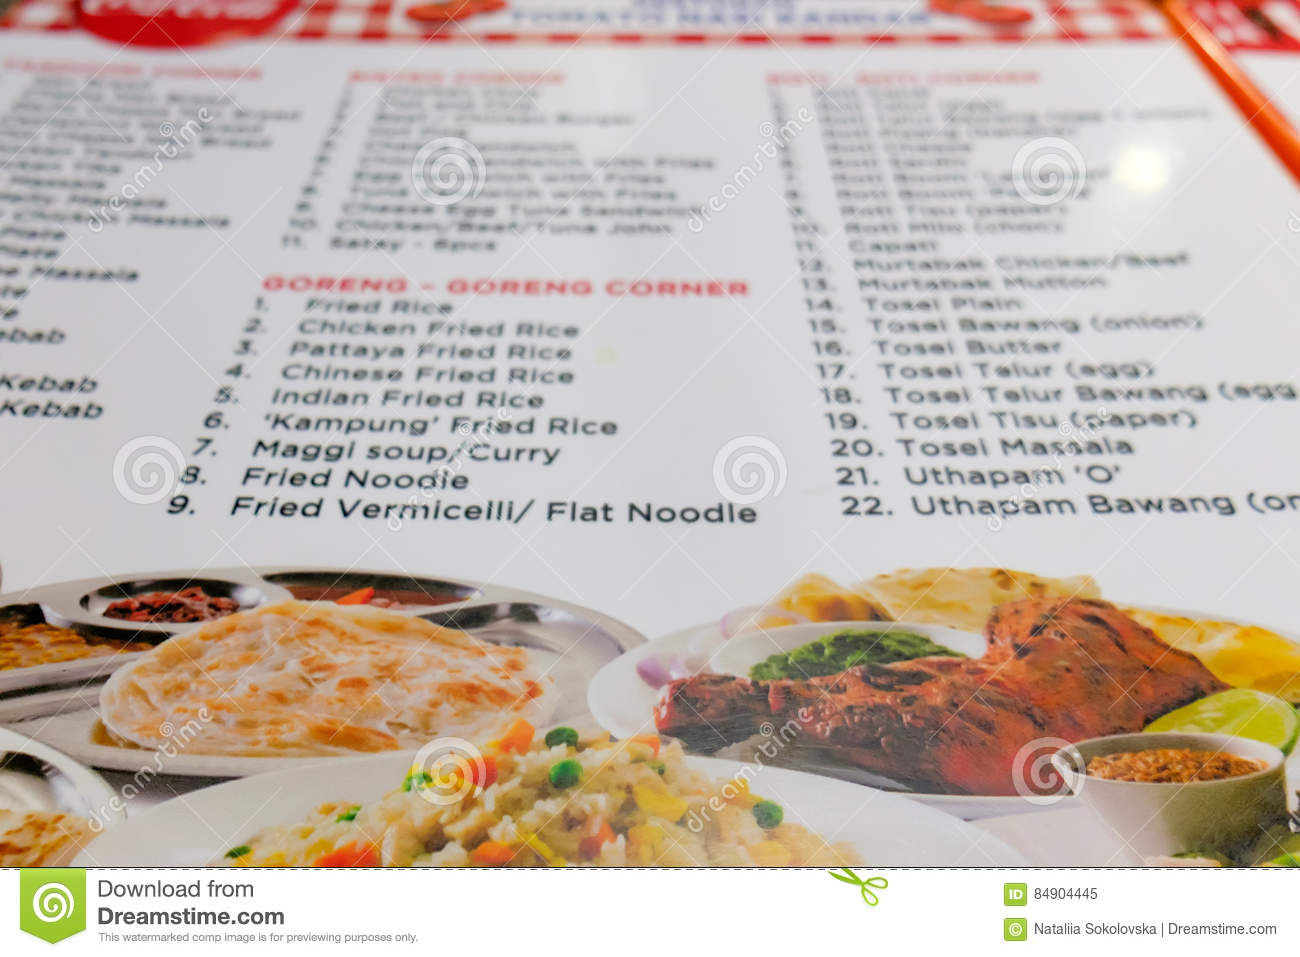 Photo menu of indian beach restaurant in malaysia stock image download photo menu of indian beach restaurant in malaysia stock image image of collage forumfinder Image collections